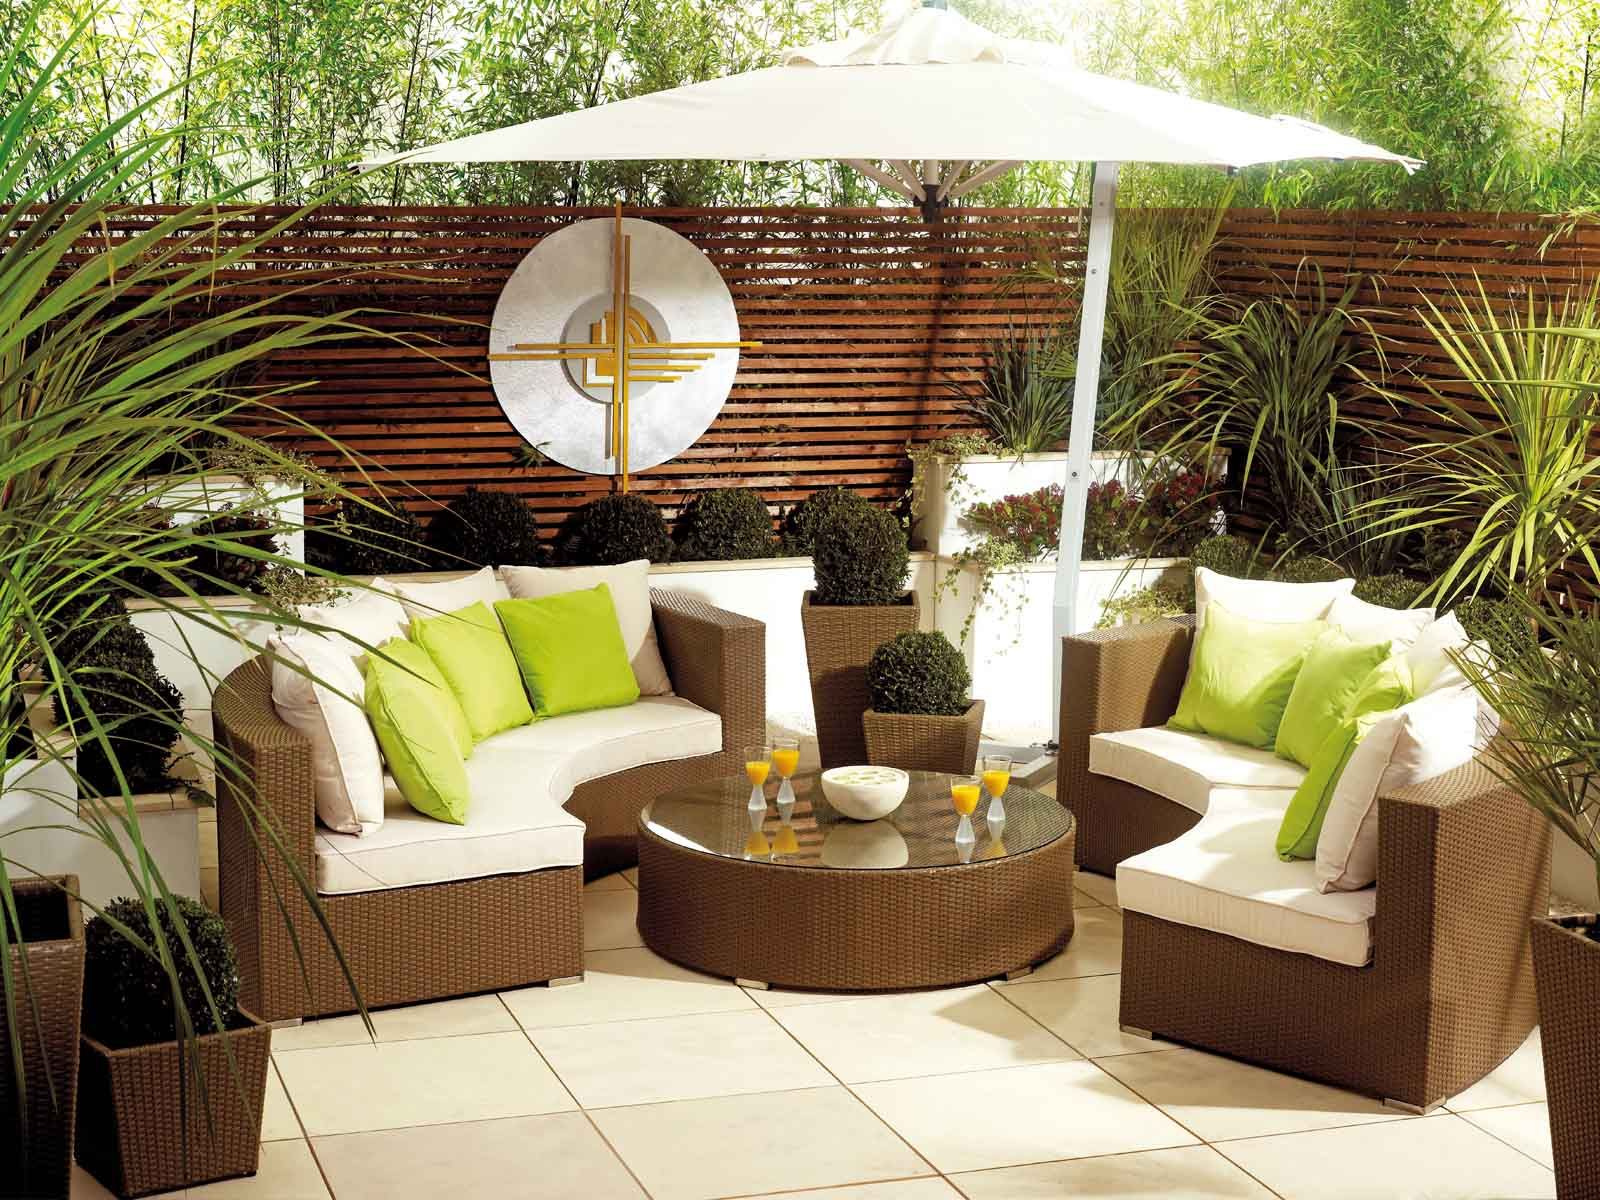 Elegant 20 Beautiful Outdoor Living Room Designs That Will Delight You